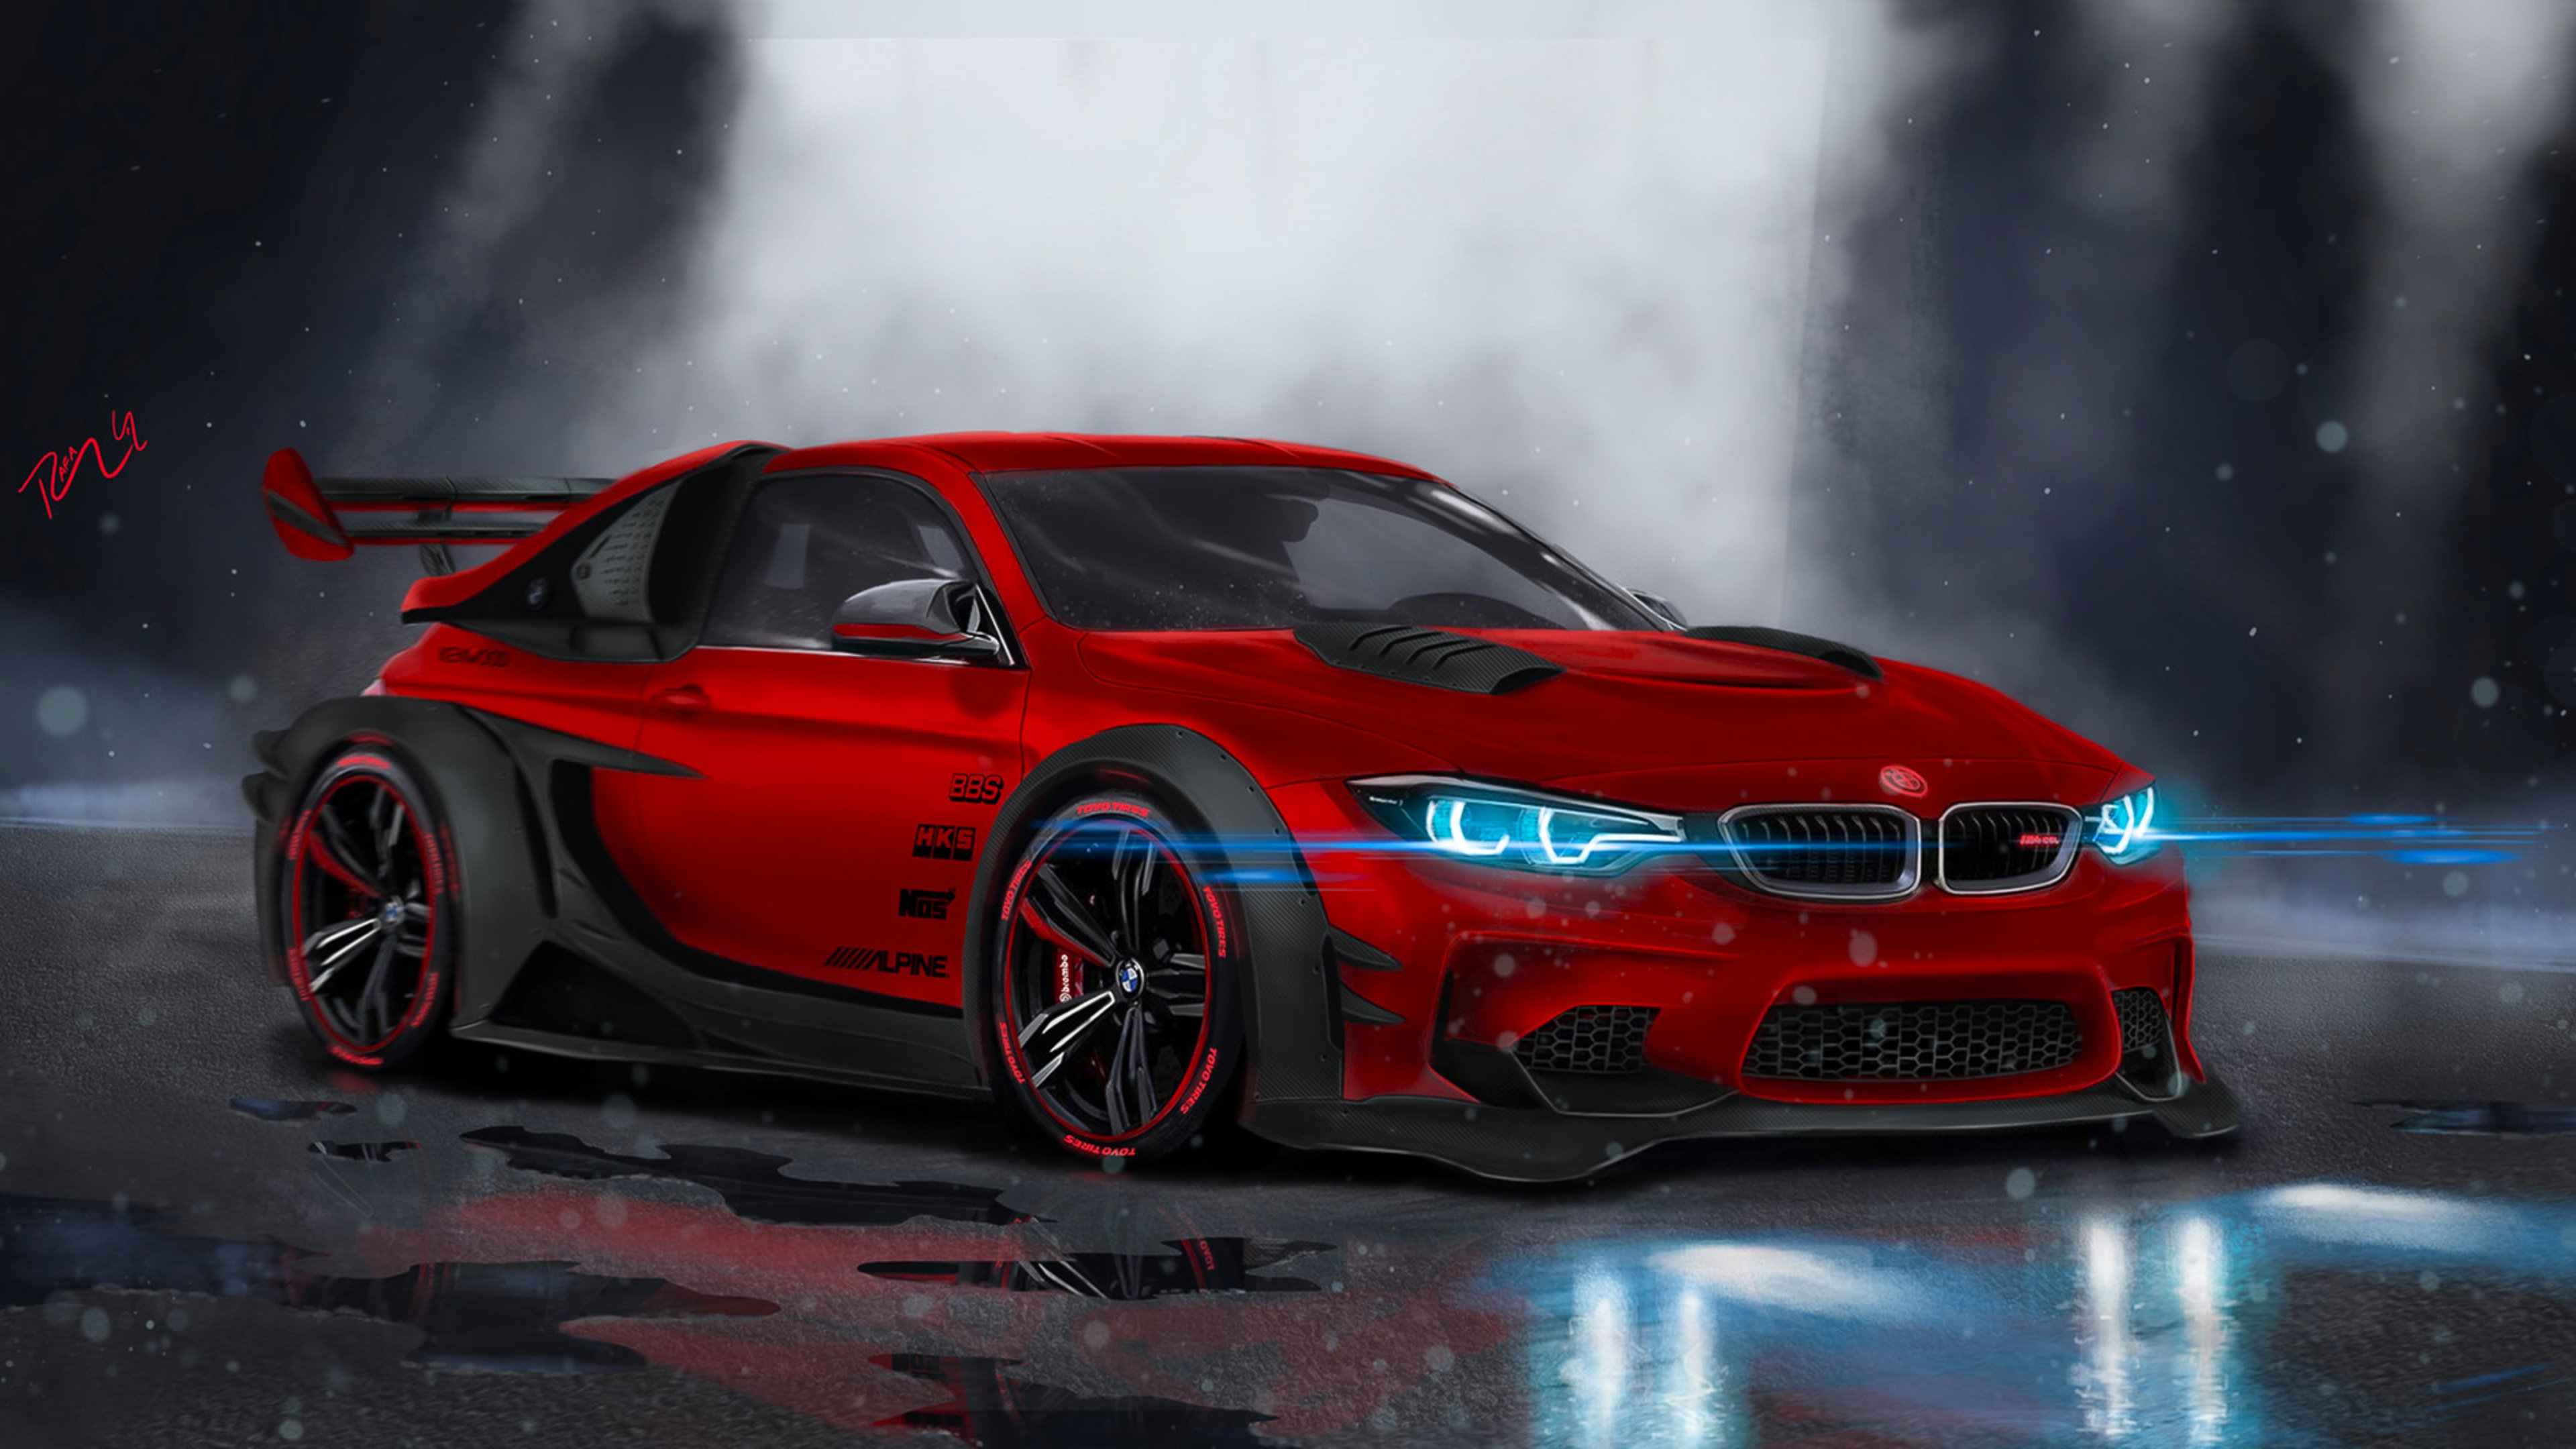 BMW M4 Highly Modified (Nexus 7,Samsung Galaxy Tab 10,Note Android Tablets)